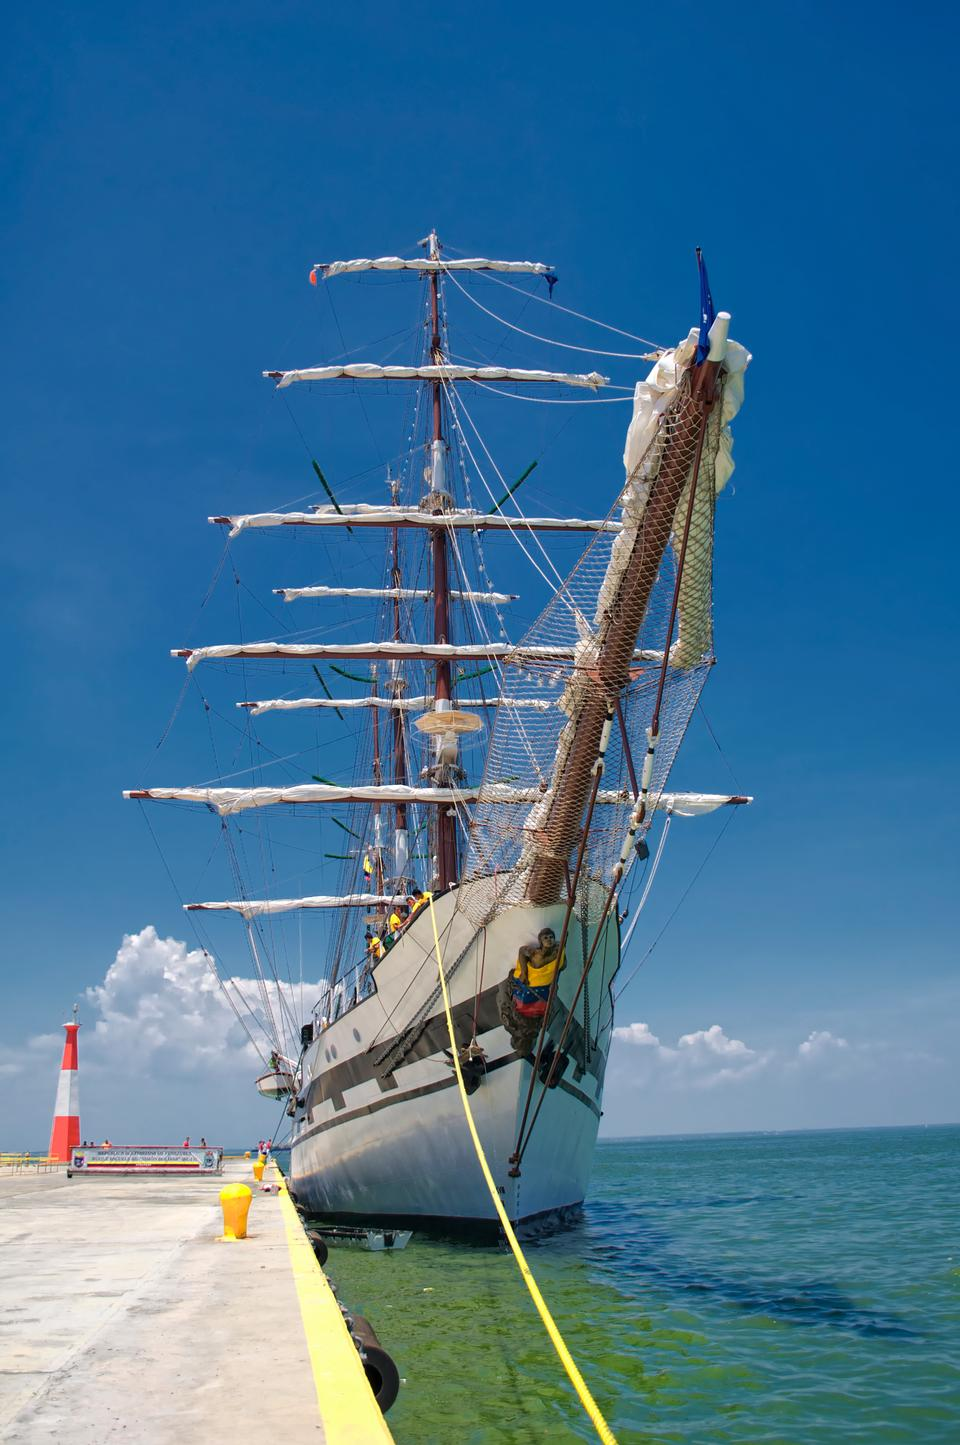 Simon Bolivar Ship